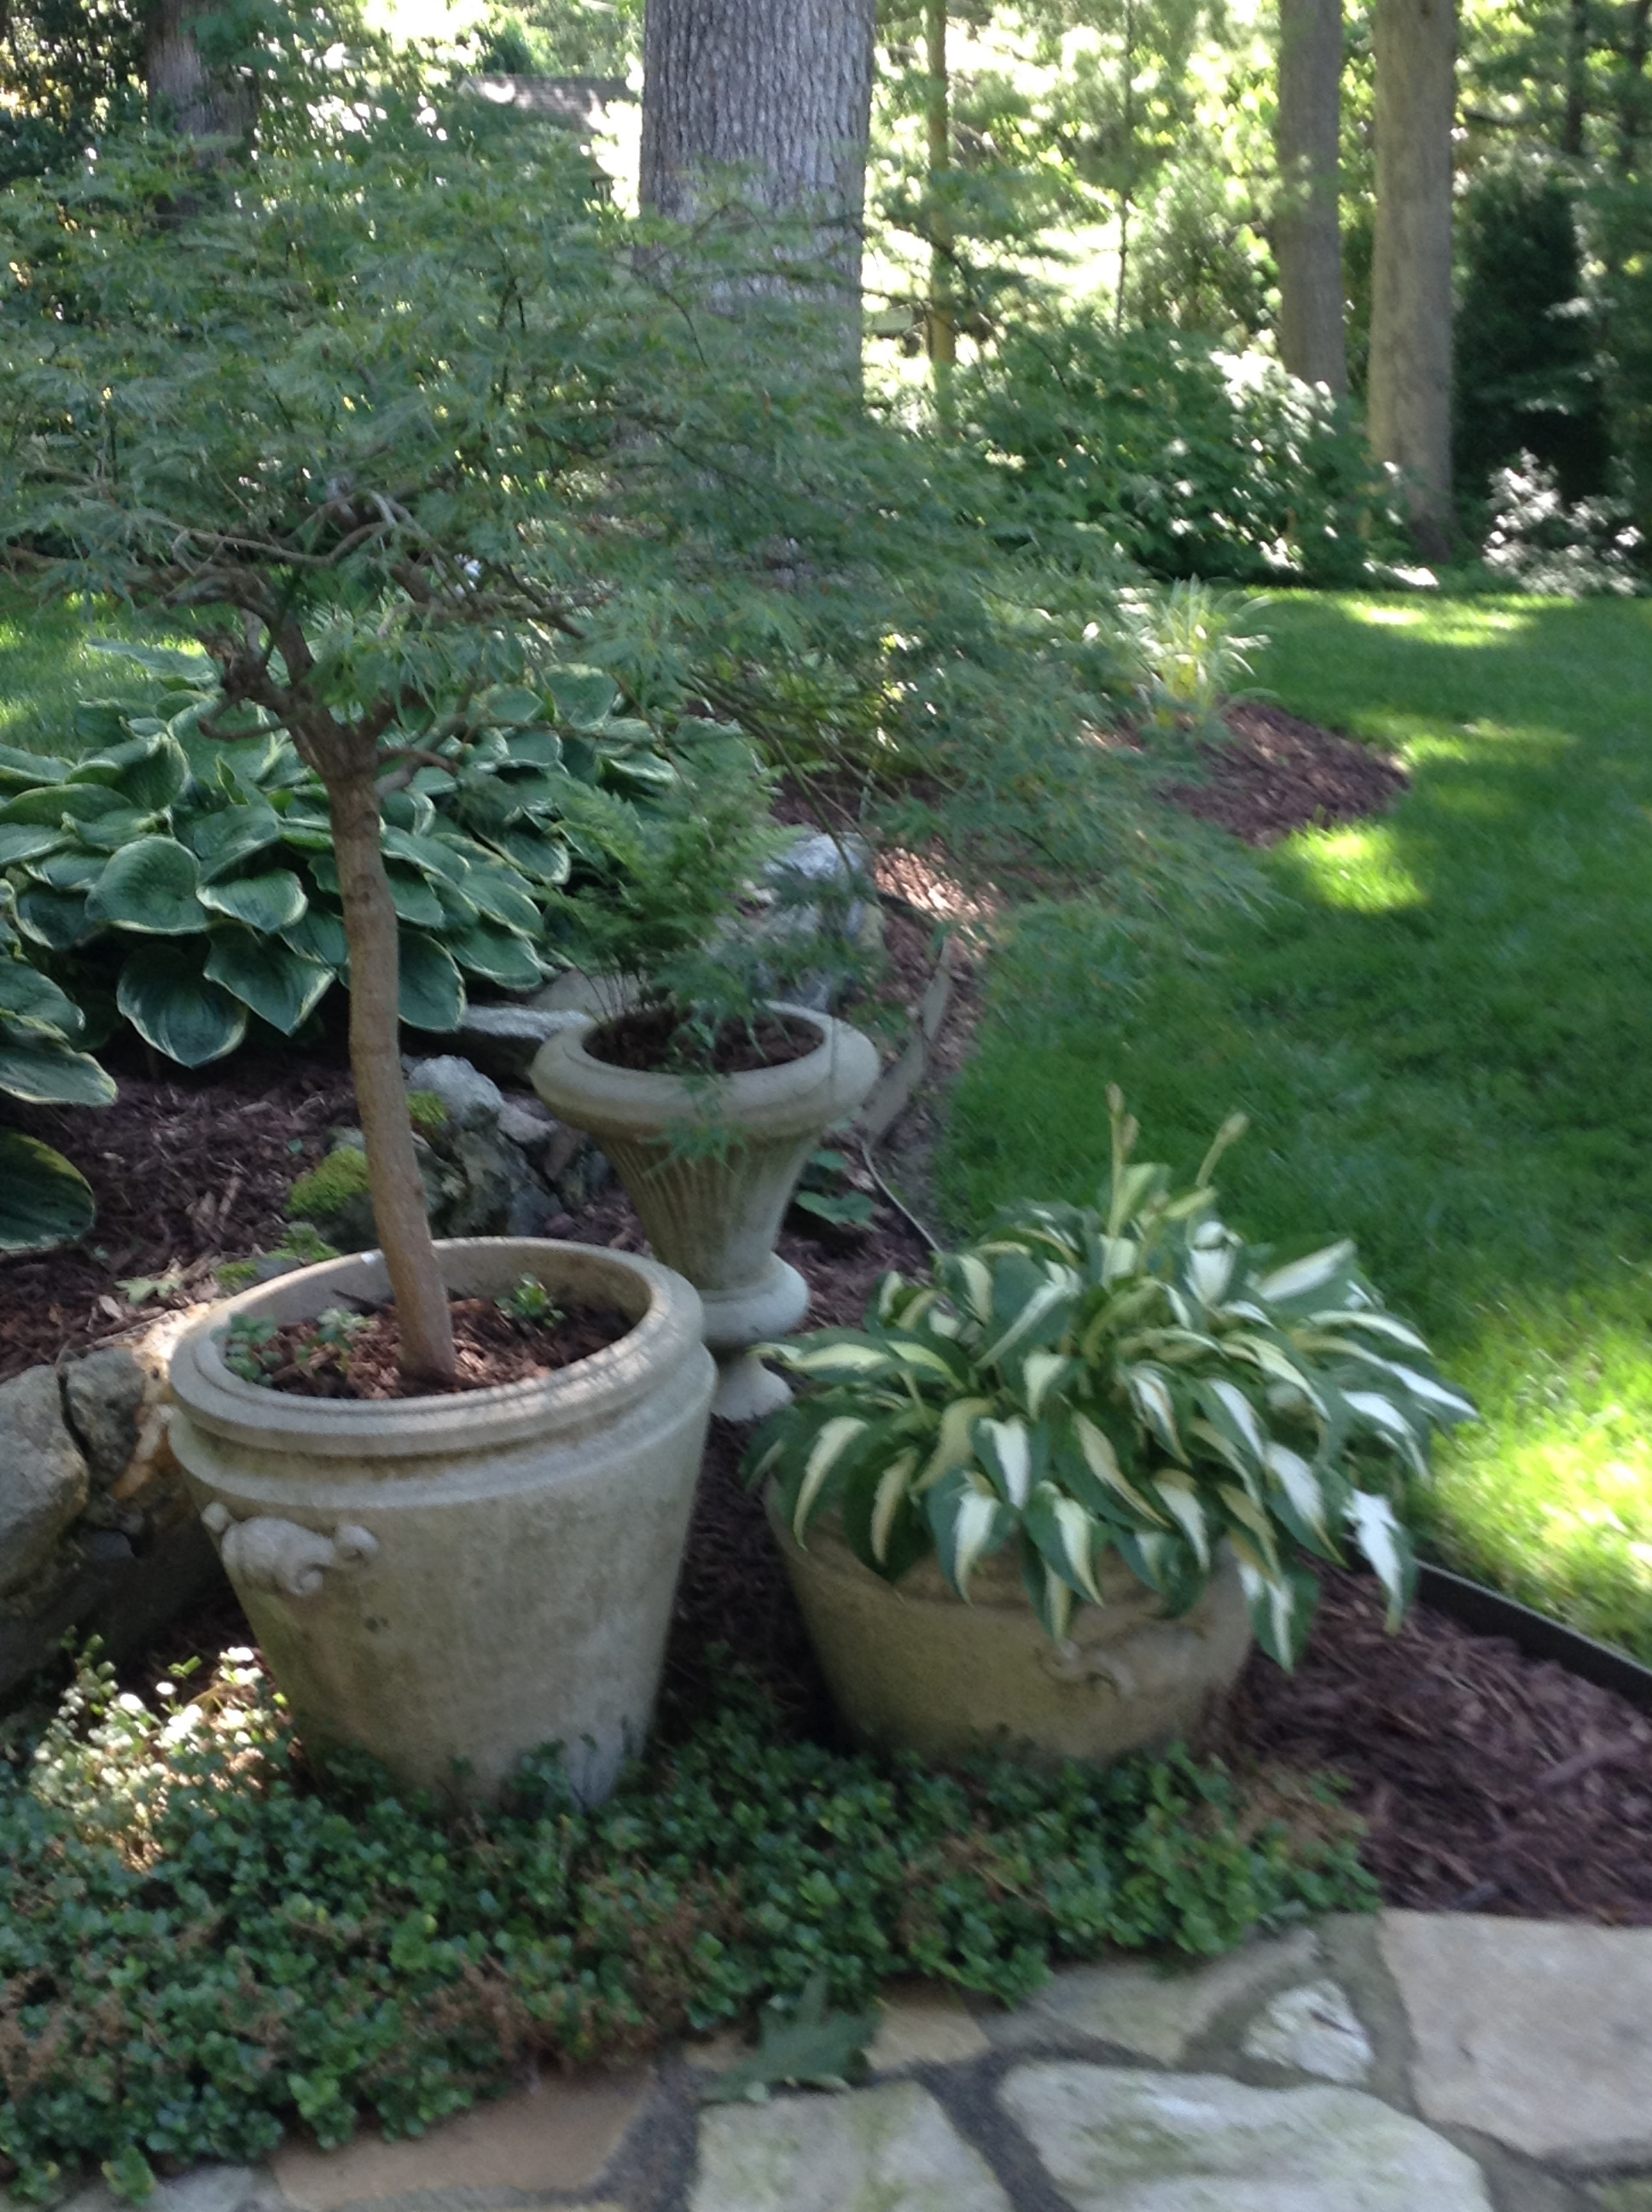 'Viridis' Japanese maple with ferns and hostas in containers. (Jan Cantrell garden, Biltmore Forest.)